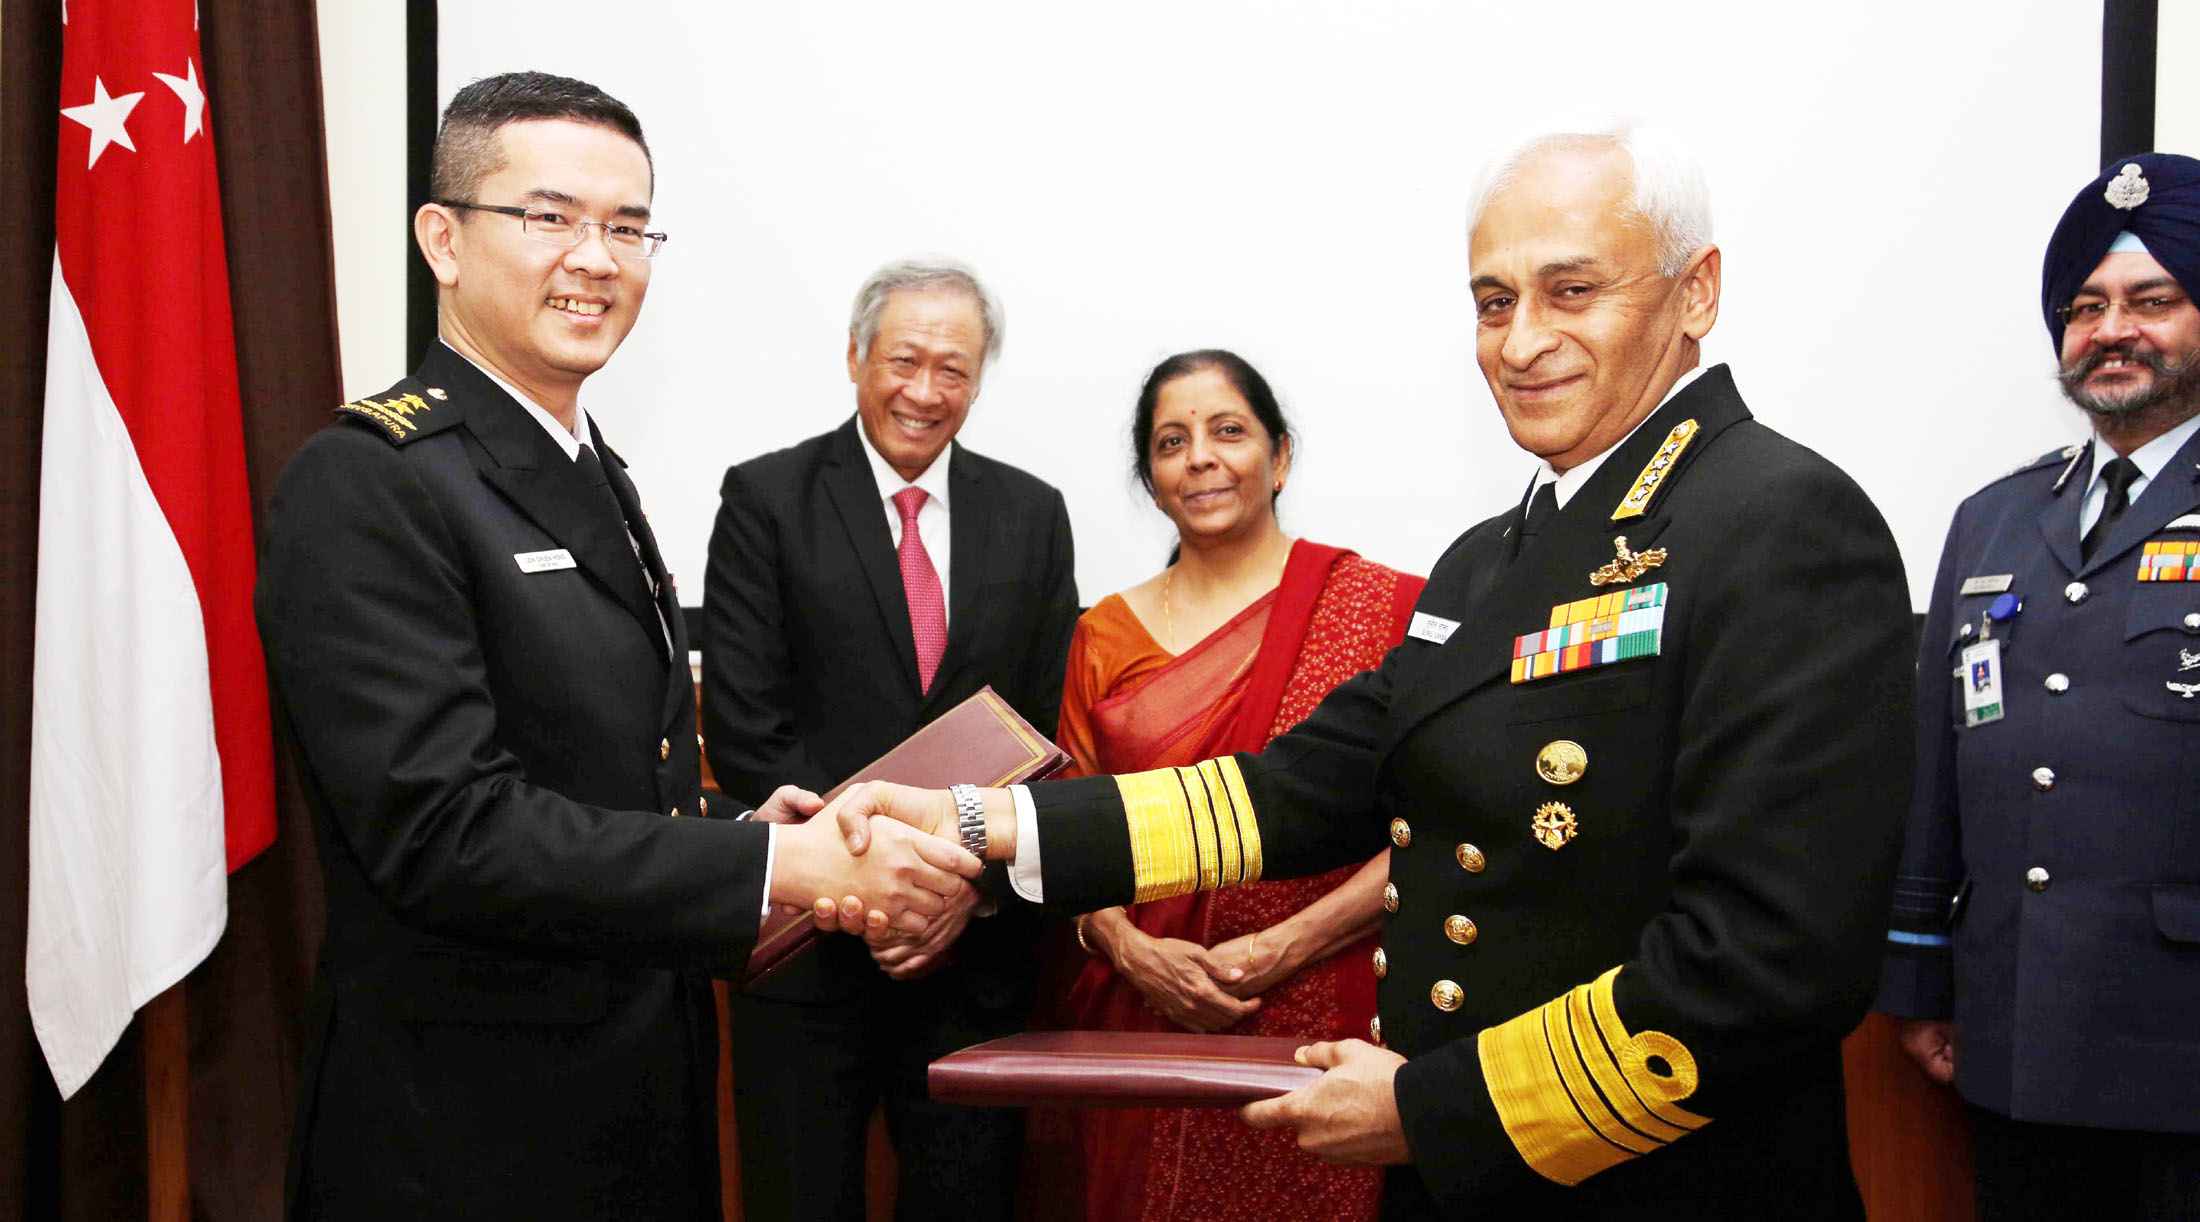 The Chief of Naval Staff, Admiral Sunil Lanba exchanging the signed documents of bilateral agreement with the Naval Chief of Singapore Rear Admiral Lew Chuen Hong, in the presence of Indian Minister for Defence, Nirmala Sitharaman, and the Defence Minister of Singapore, Dr. Ng Eng Hen, in New Delhi on November 29, 2017. The Chief of the Air Staff, Air Chief Marshal B.S. Dhanoa is also seen. (Photo courtsey: Press Information Bureau)